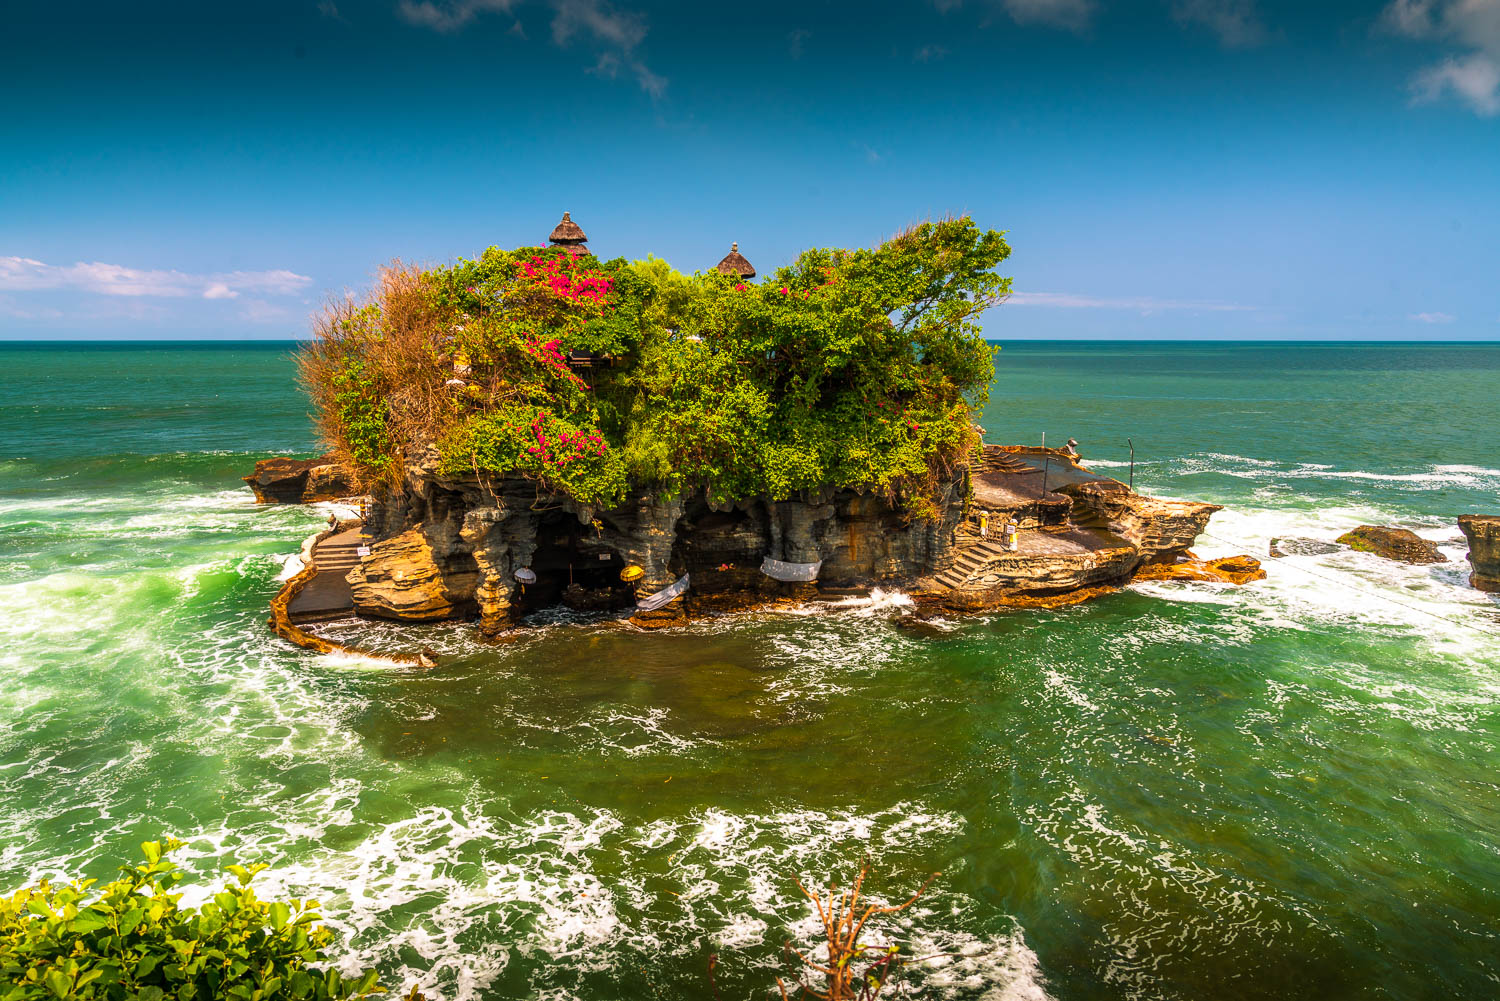 Although Tanah Lot is not a directional temple, due to its island location only visited during low tide, it's a must visit temple.